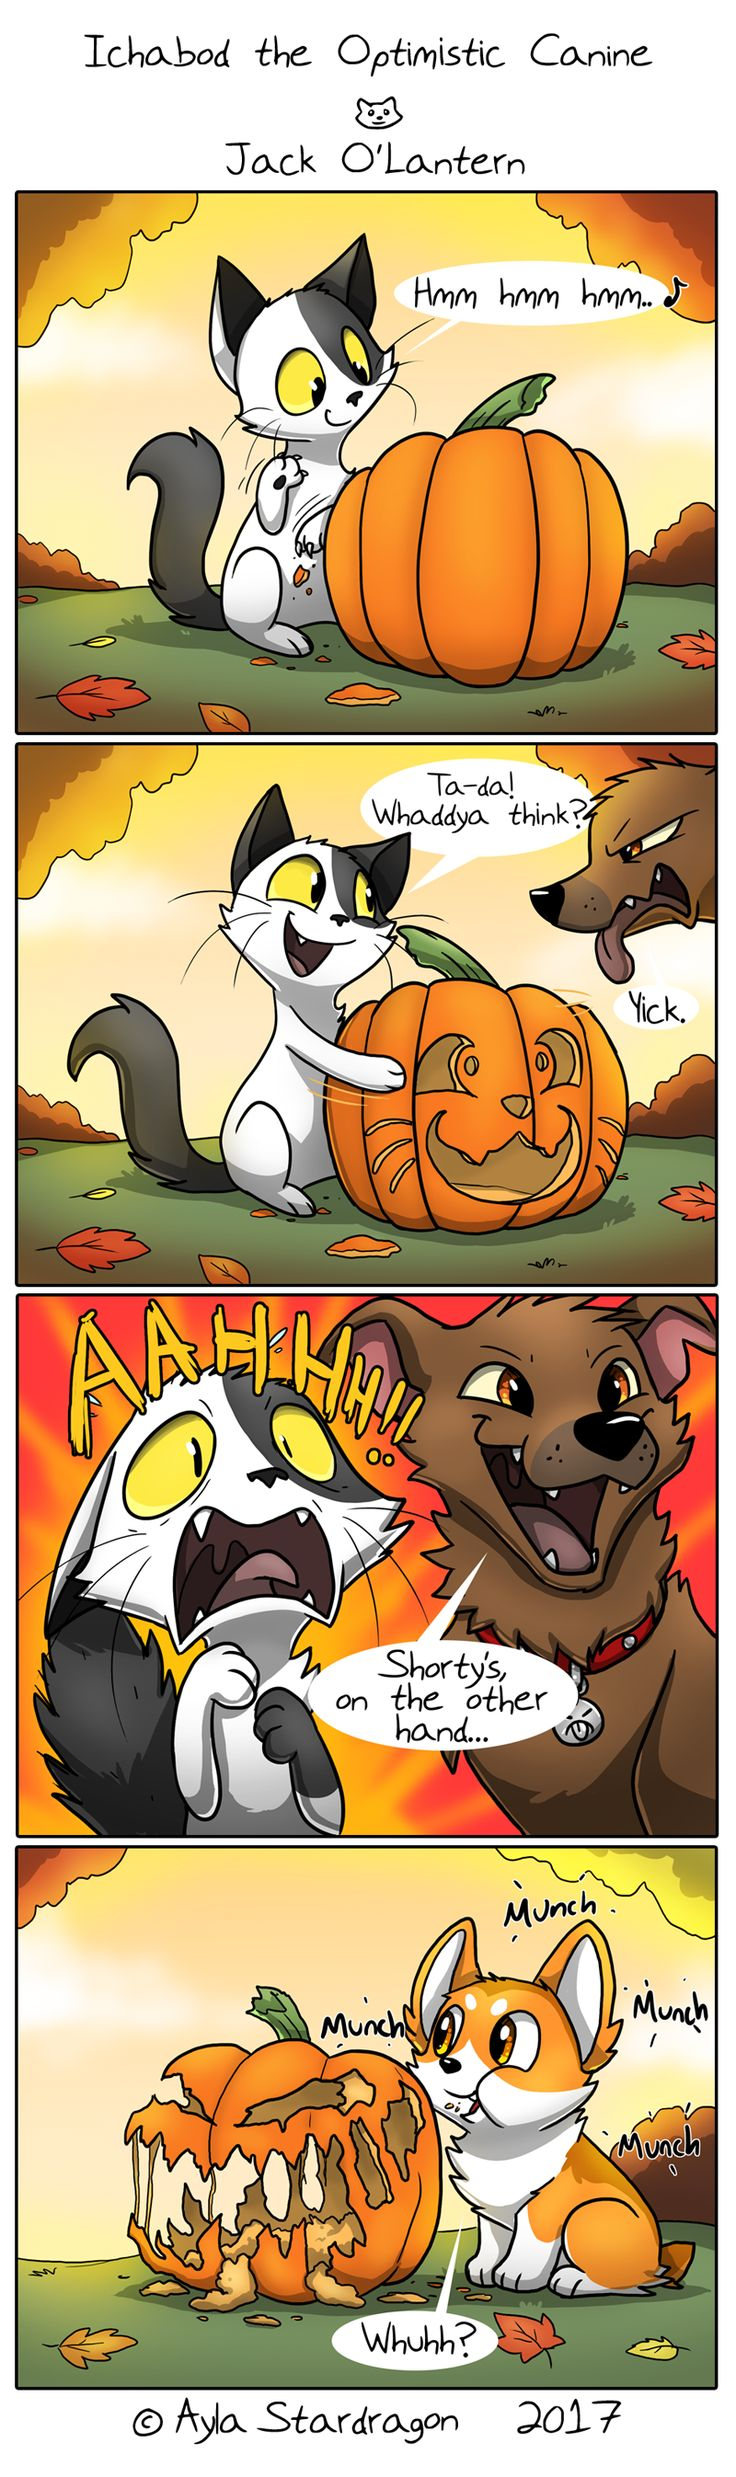 Ichabod the Optimistic Canine :: Jack O'Lantern | Tapas - image 1